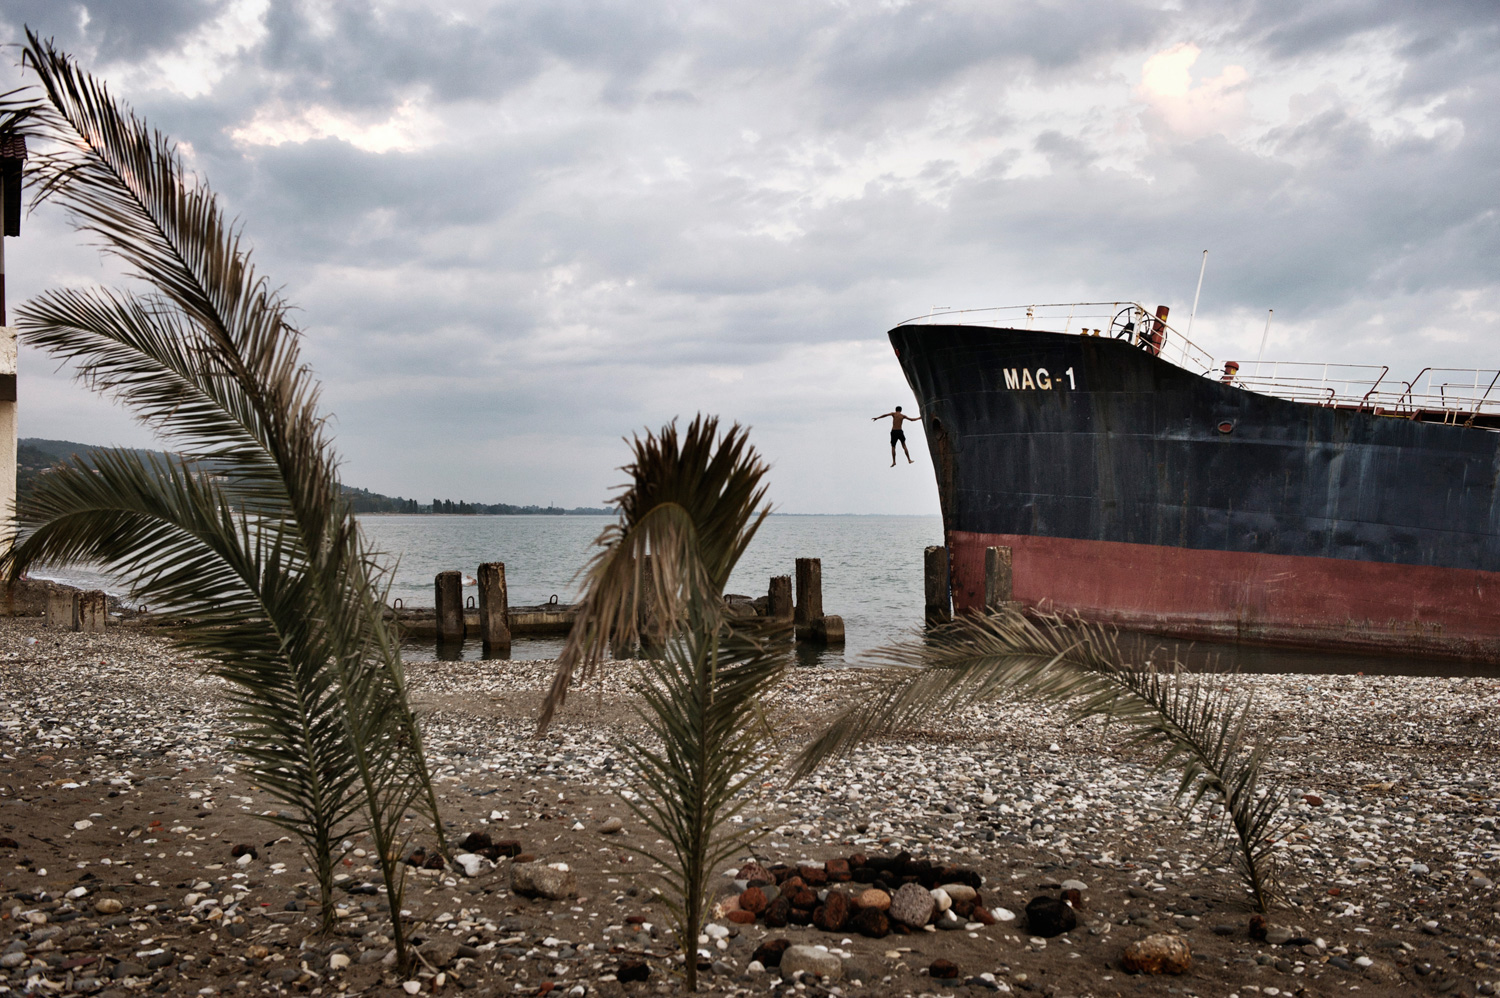 An Abkhaz boy jumps from an abandoned Turkish freighter beached near central Sukhumi, Abkhazia. After more than 15 years of economic blockades by Georgia, investment in Abkhazia is almost nonexistent–the resorts are empty, and the economy is stagnant.